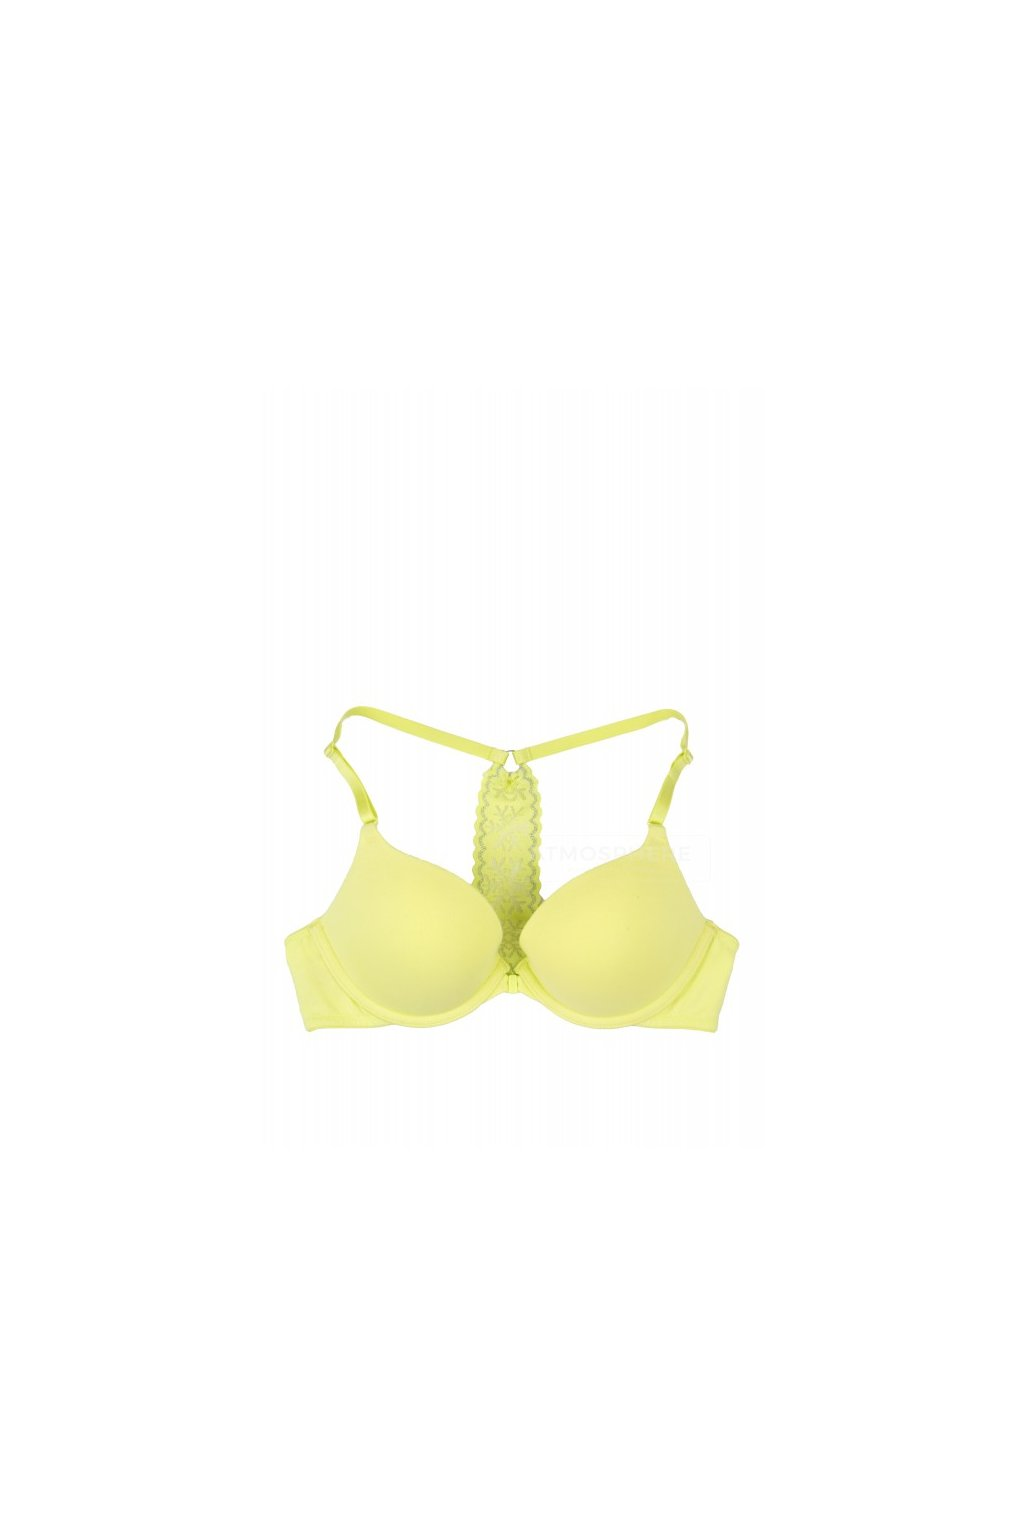 podprsenka victoria's secret yellow push up 34C eshopat 1